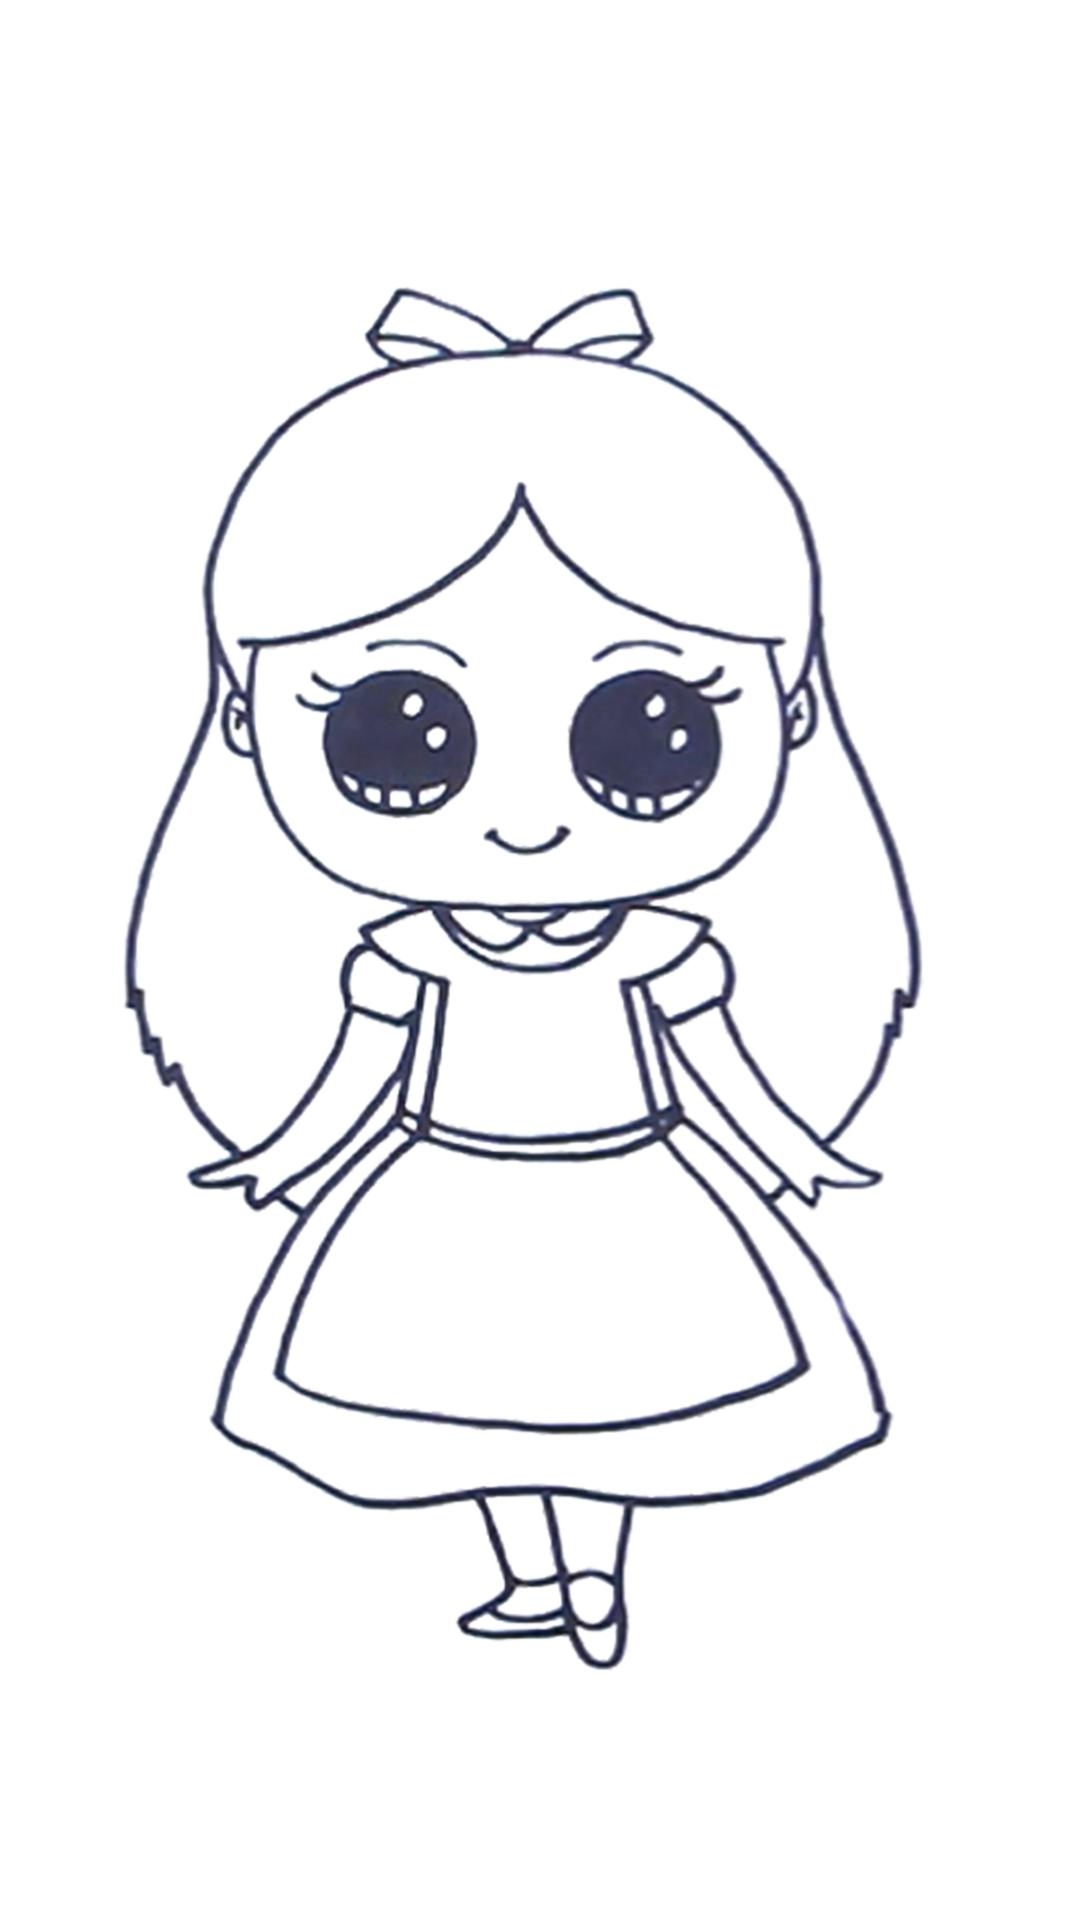 How to Draw Little Princess Easy Step By Step for Android ...